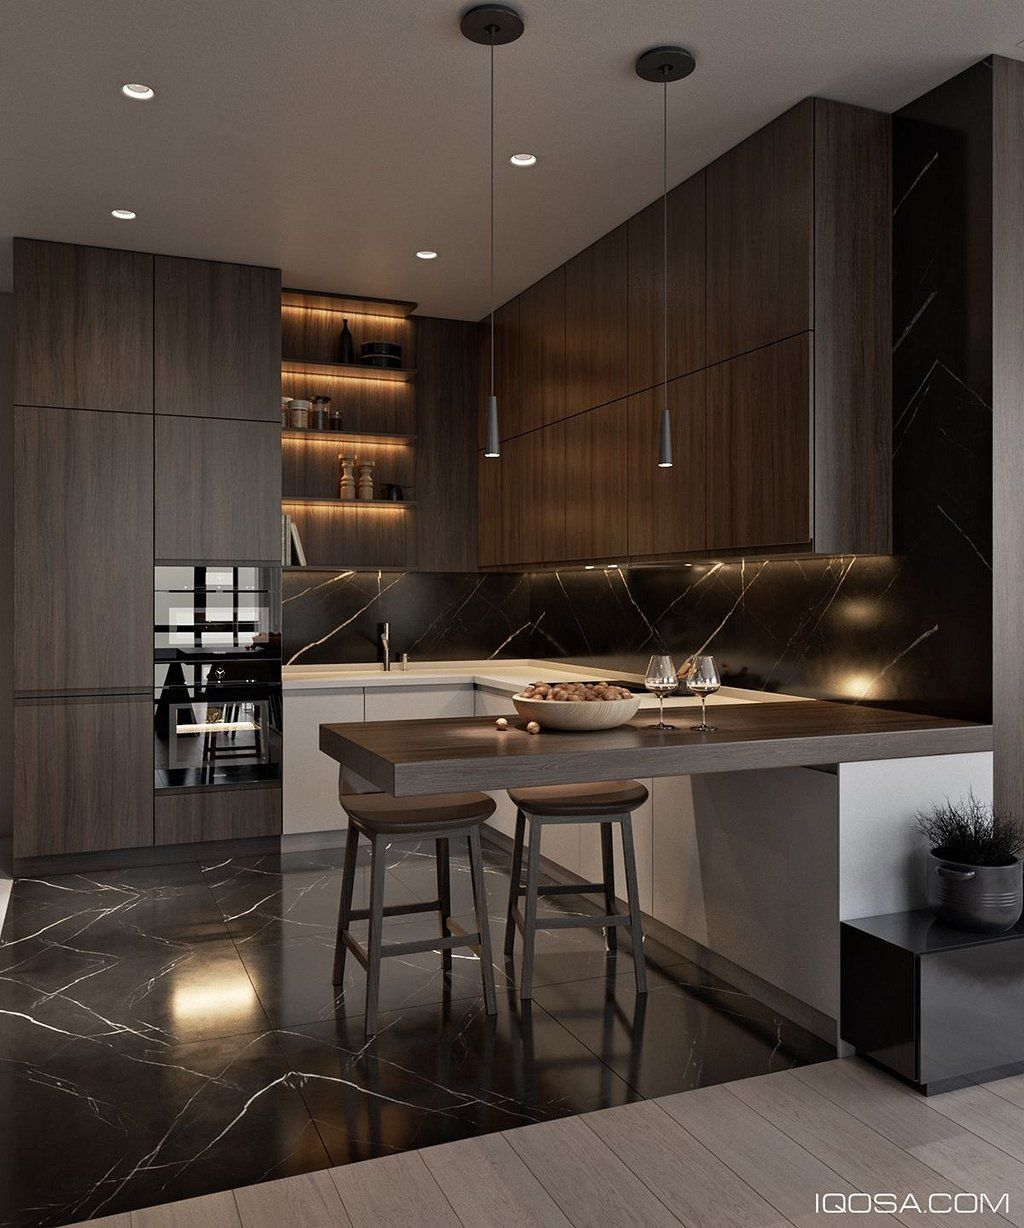 105 Inspiring Examples Of Contemporary Interior Design Https Www Mobmasker Com 105 Inspi Contemporary Kitchen Interior Design Kitchen Popular Kitchen Designs